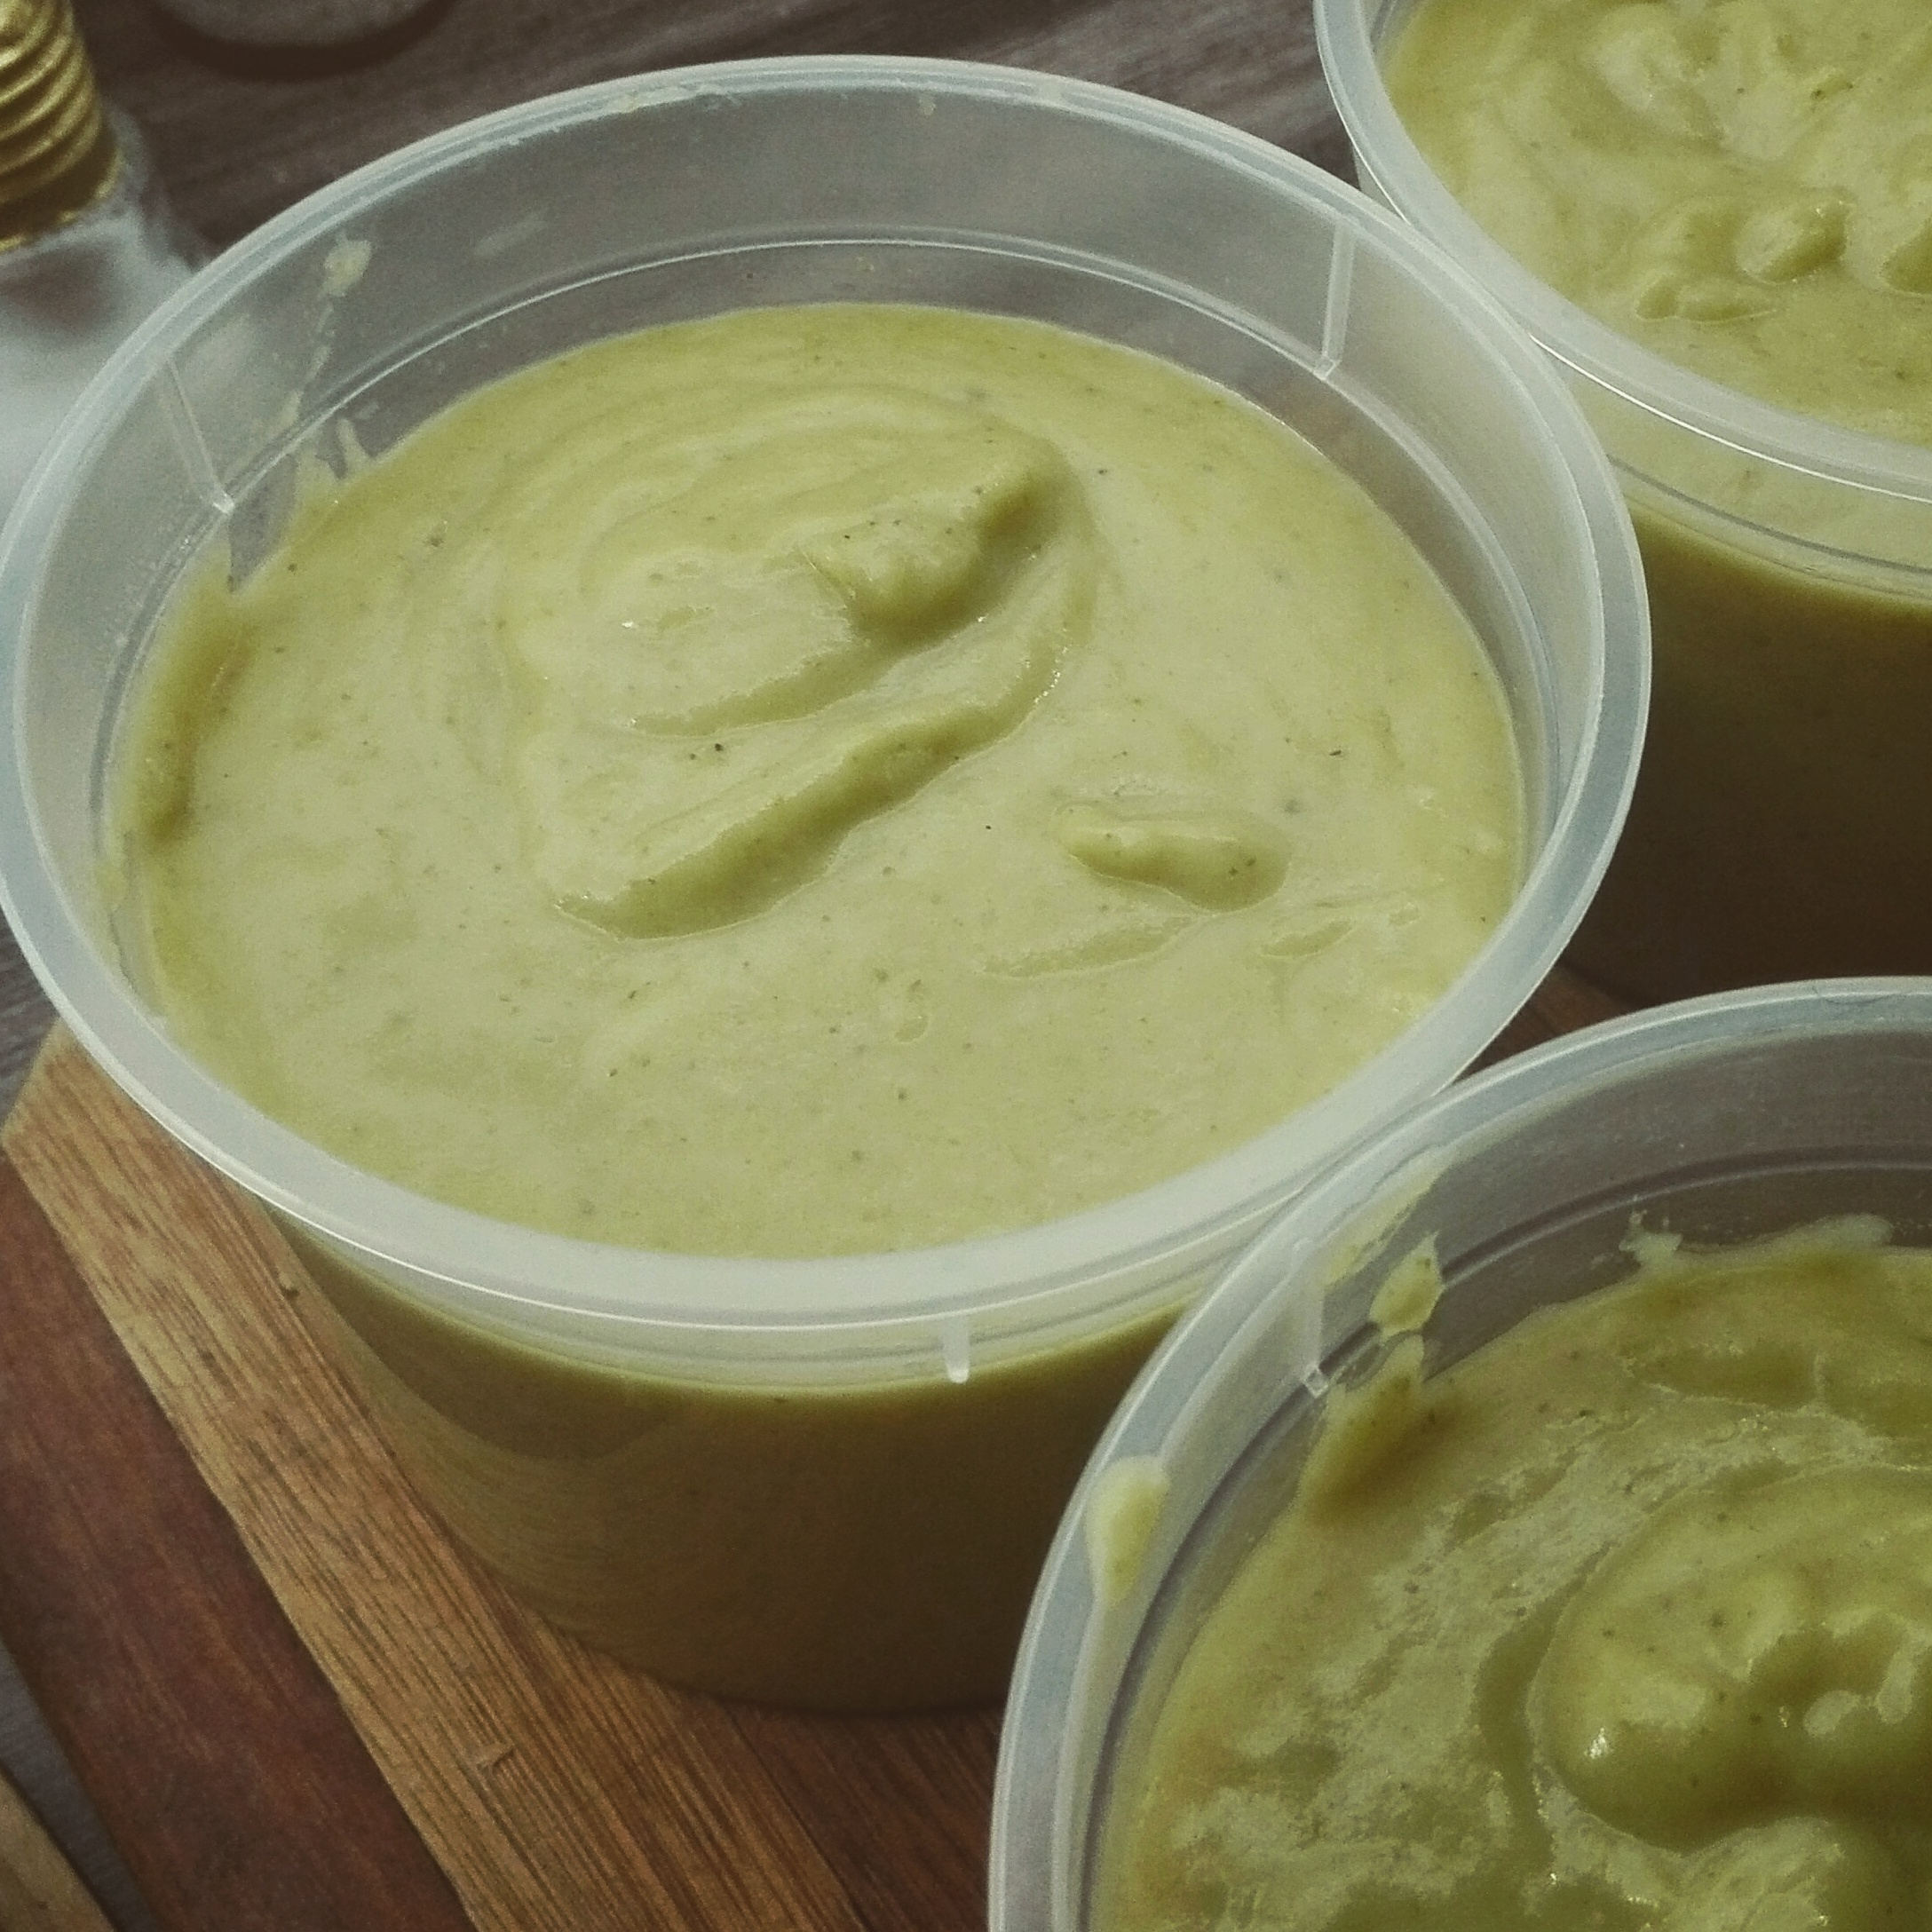 Tim Perry's Soup (Creamy Curry Cauliflower and Broccoli Soup) Terri Jansen